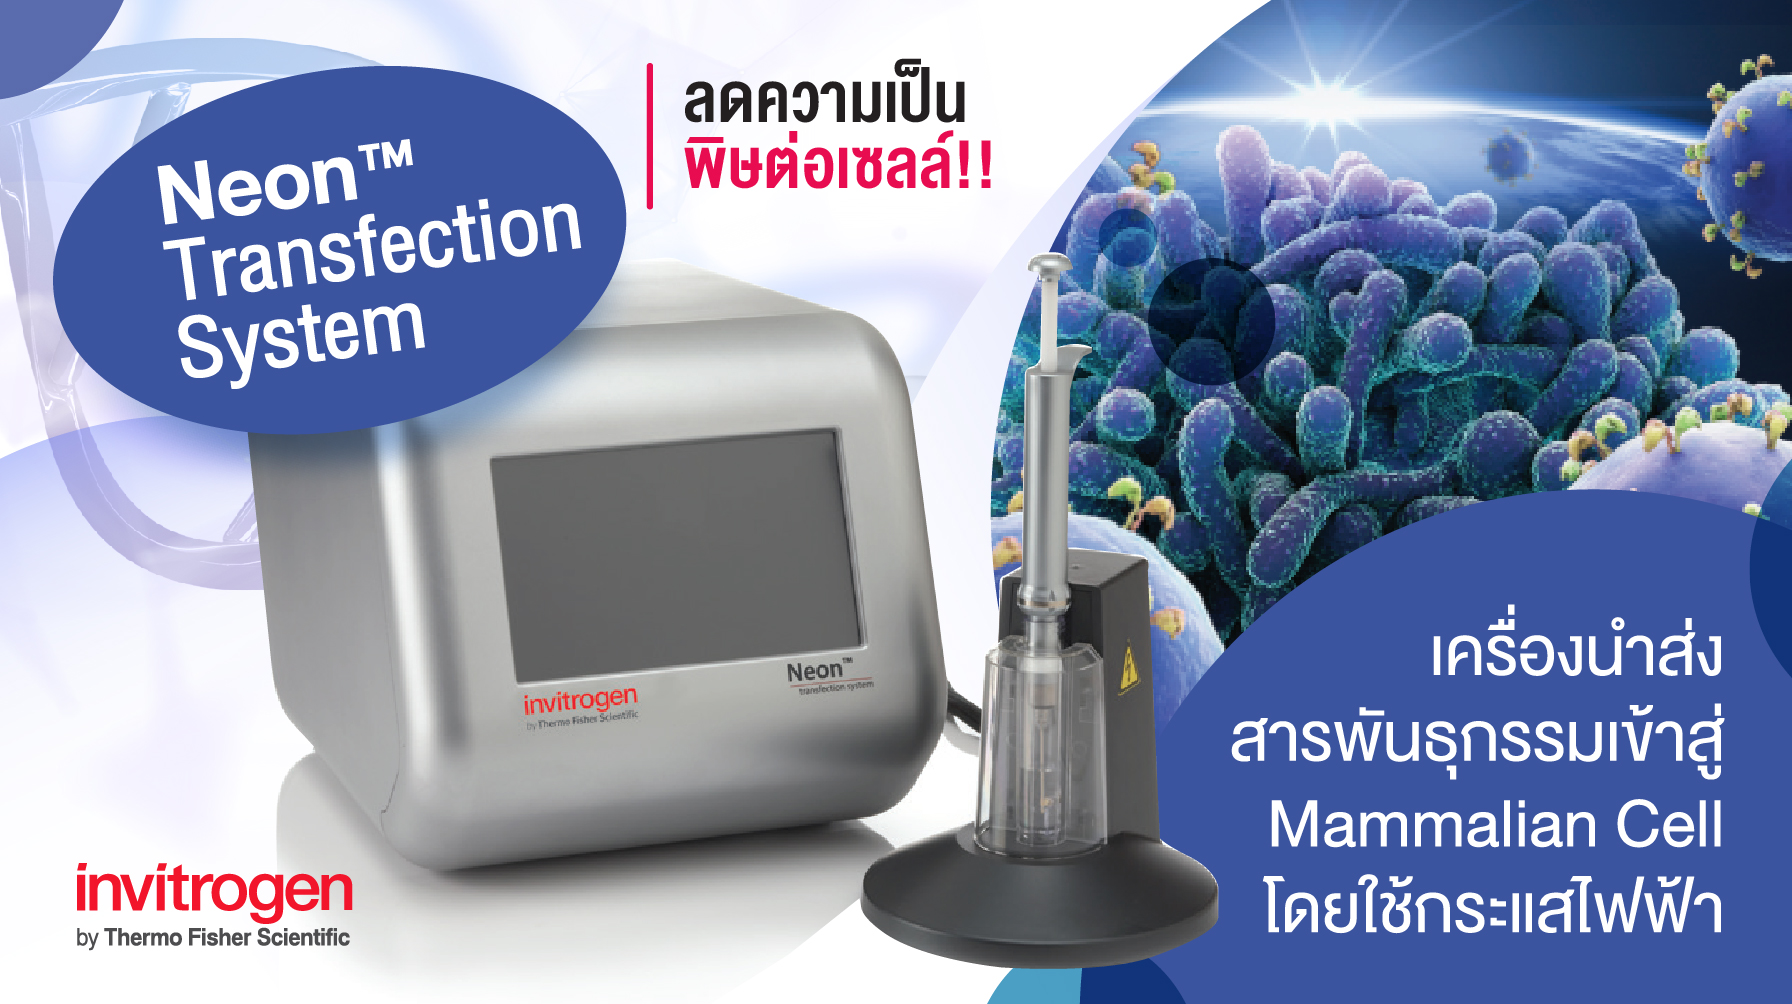 Neon™ Transfection System